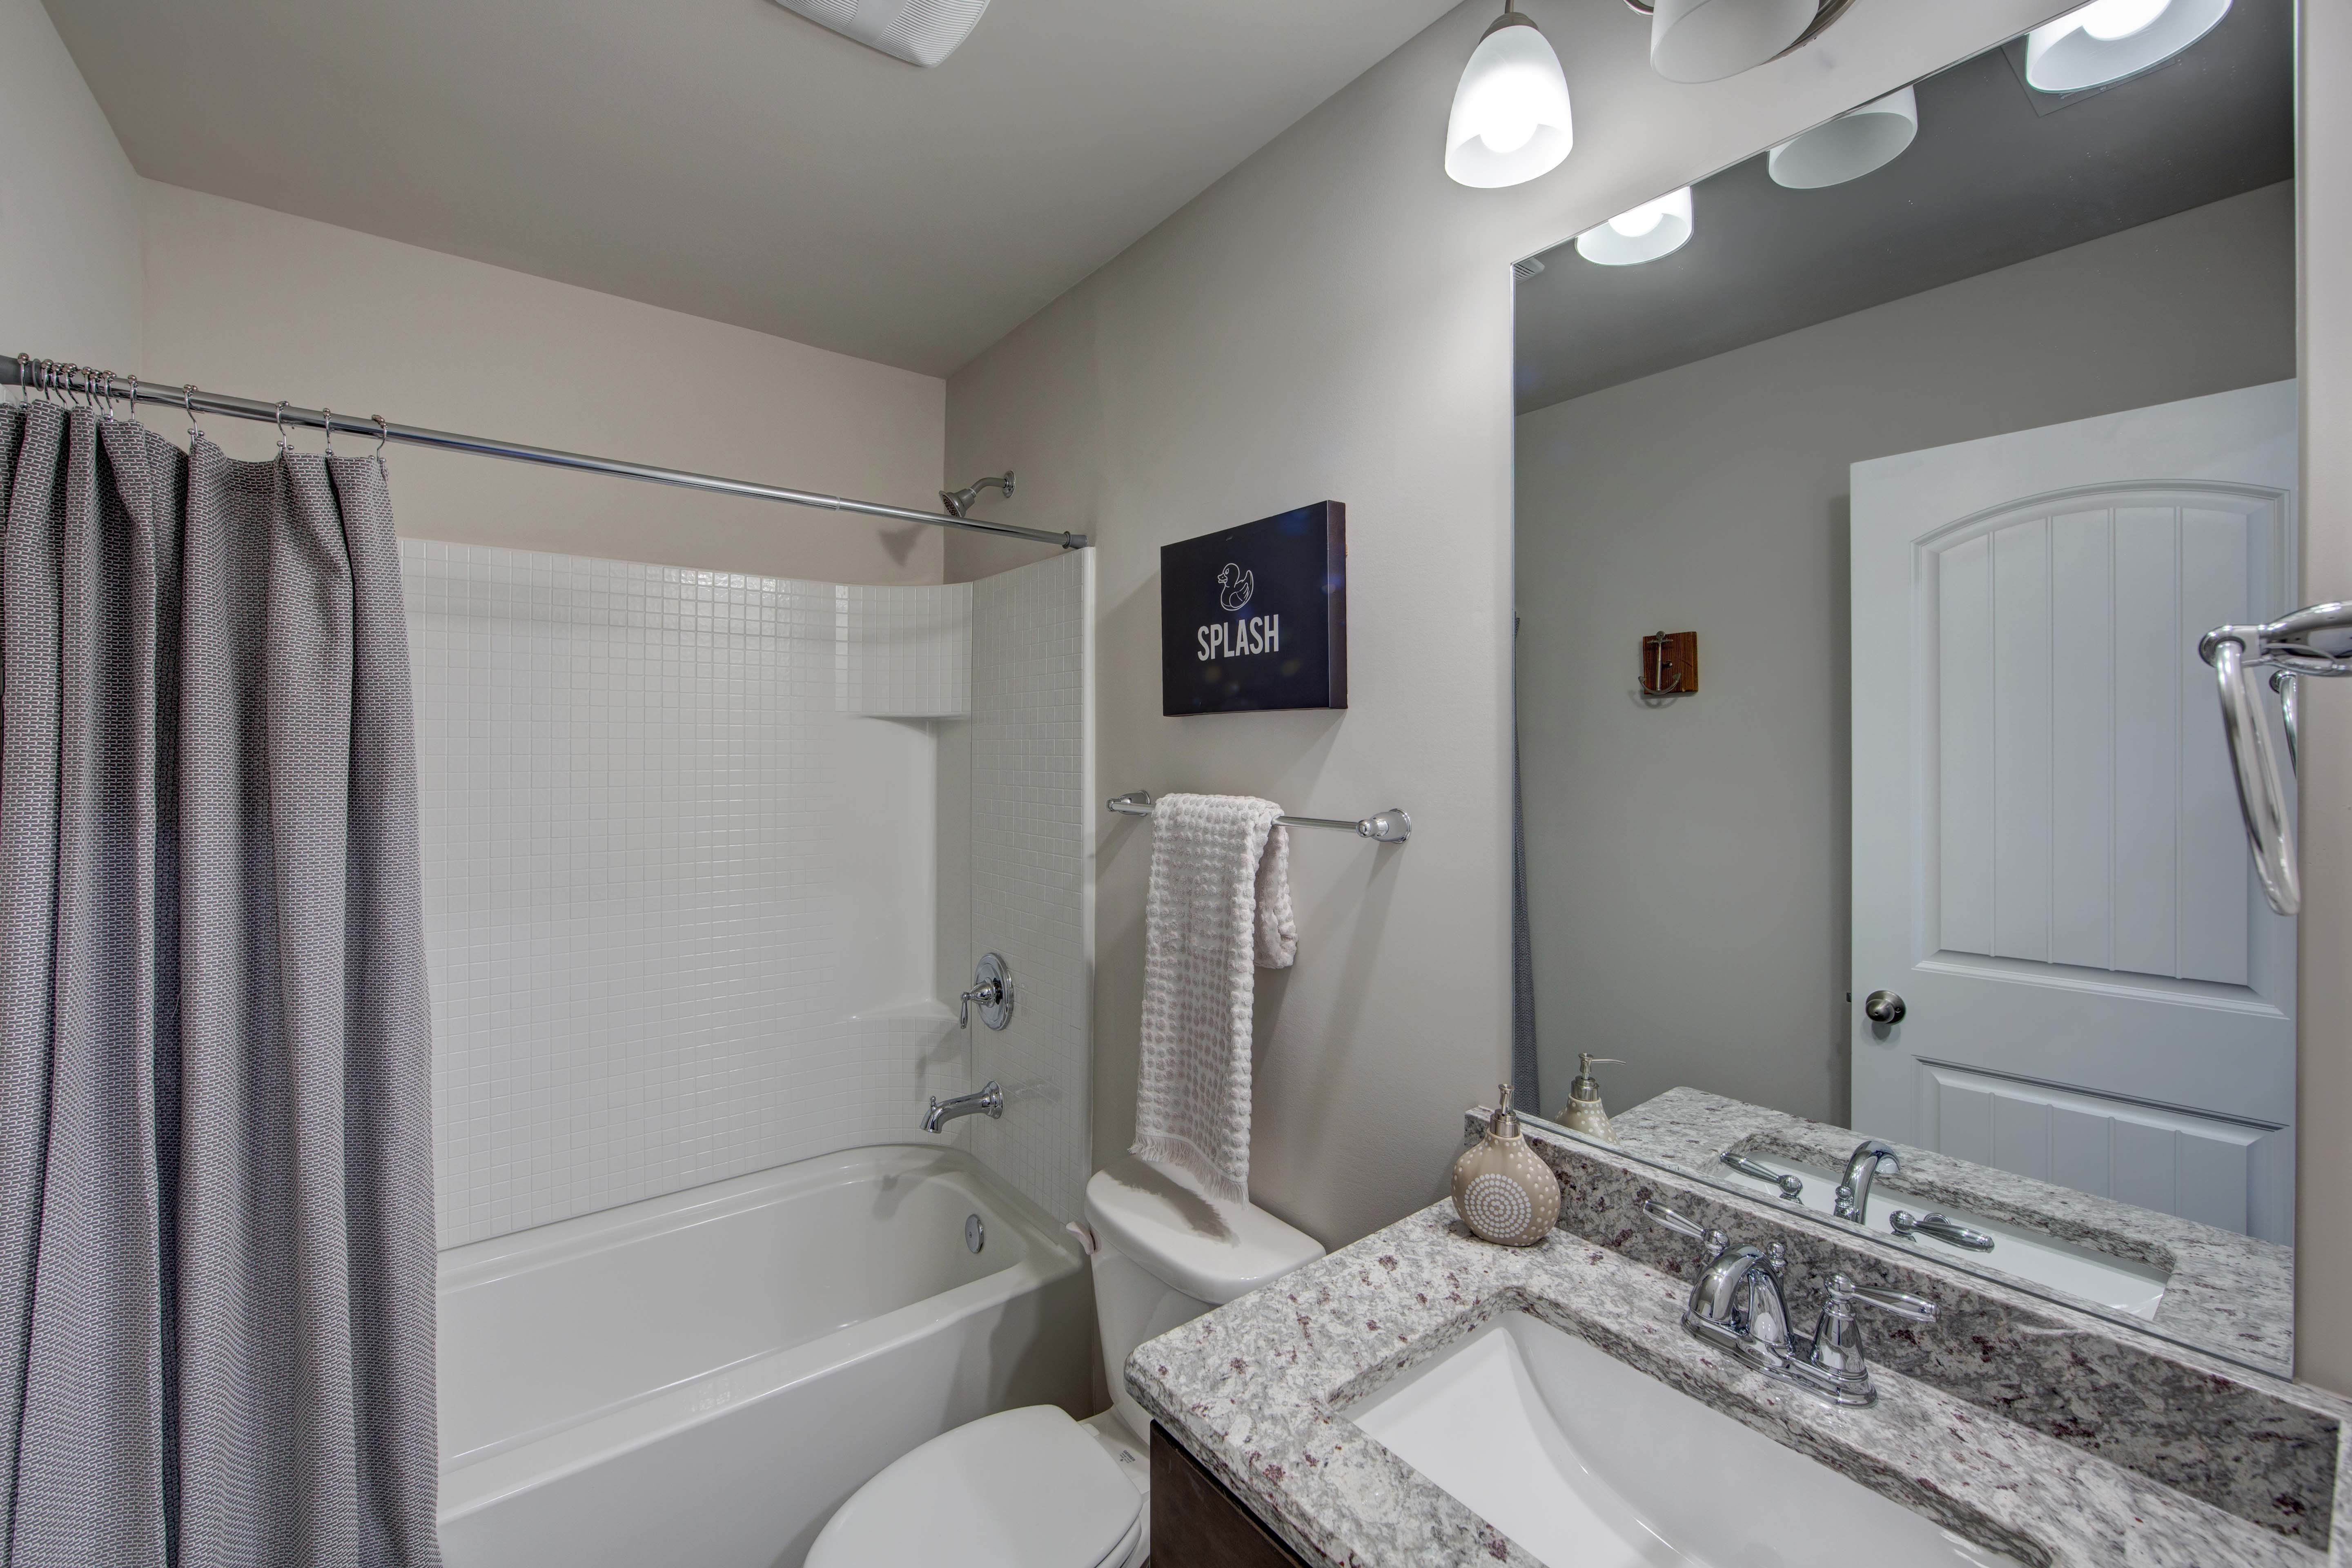 Bathroom featured in the Owens II By D.R. Horton in Nashville, TN